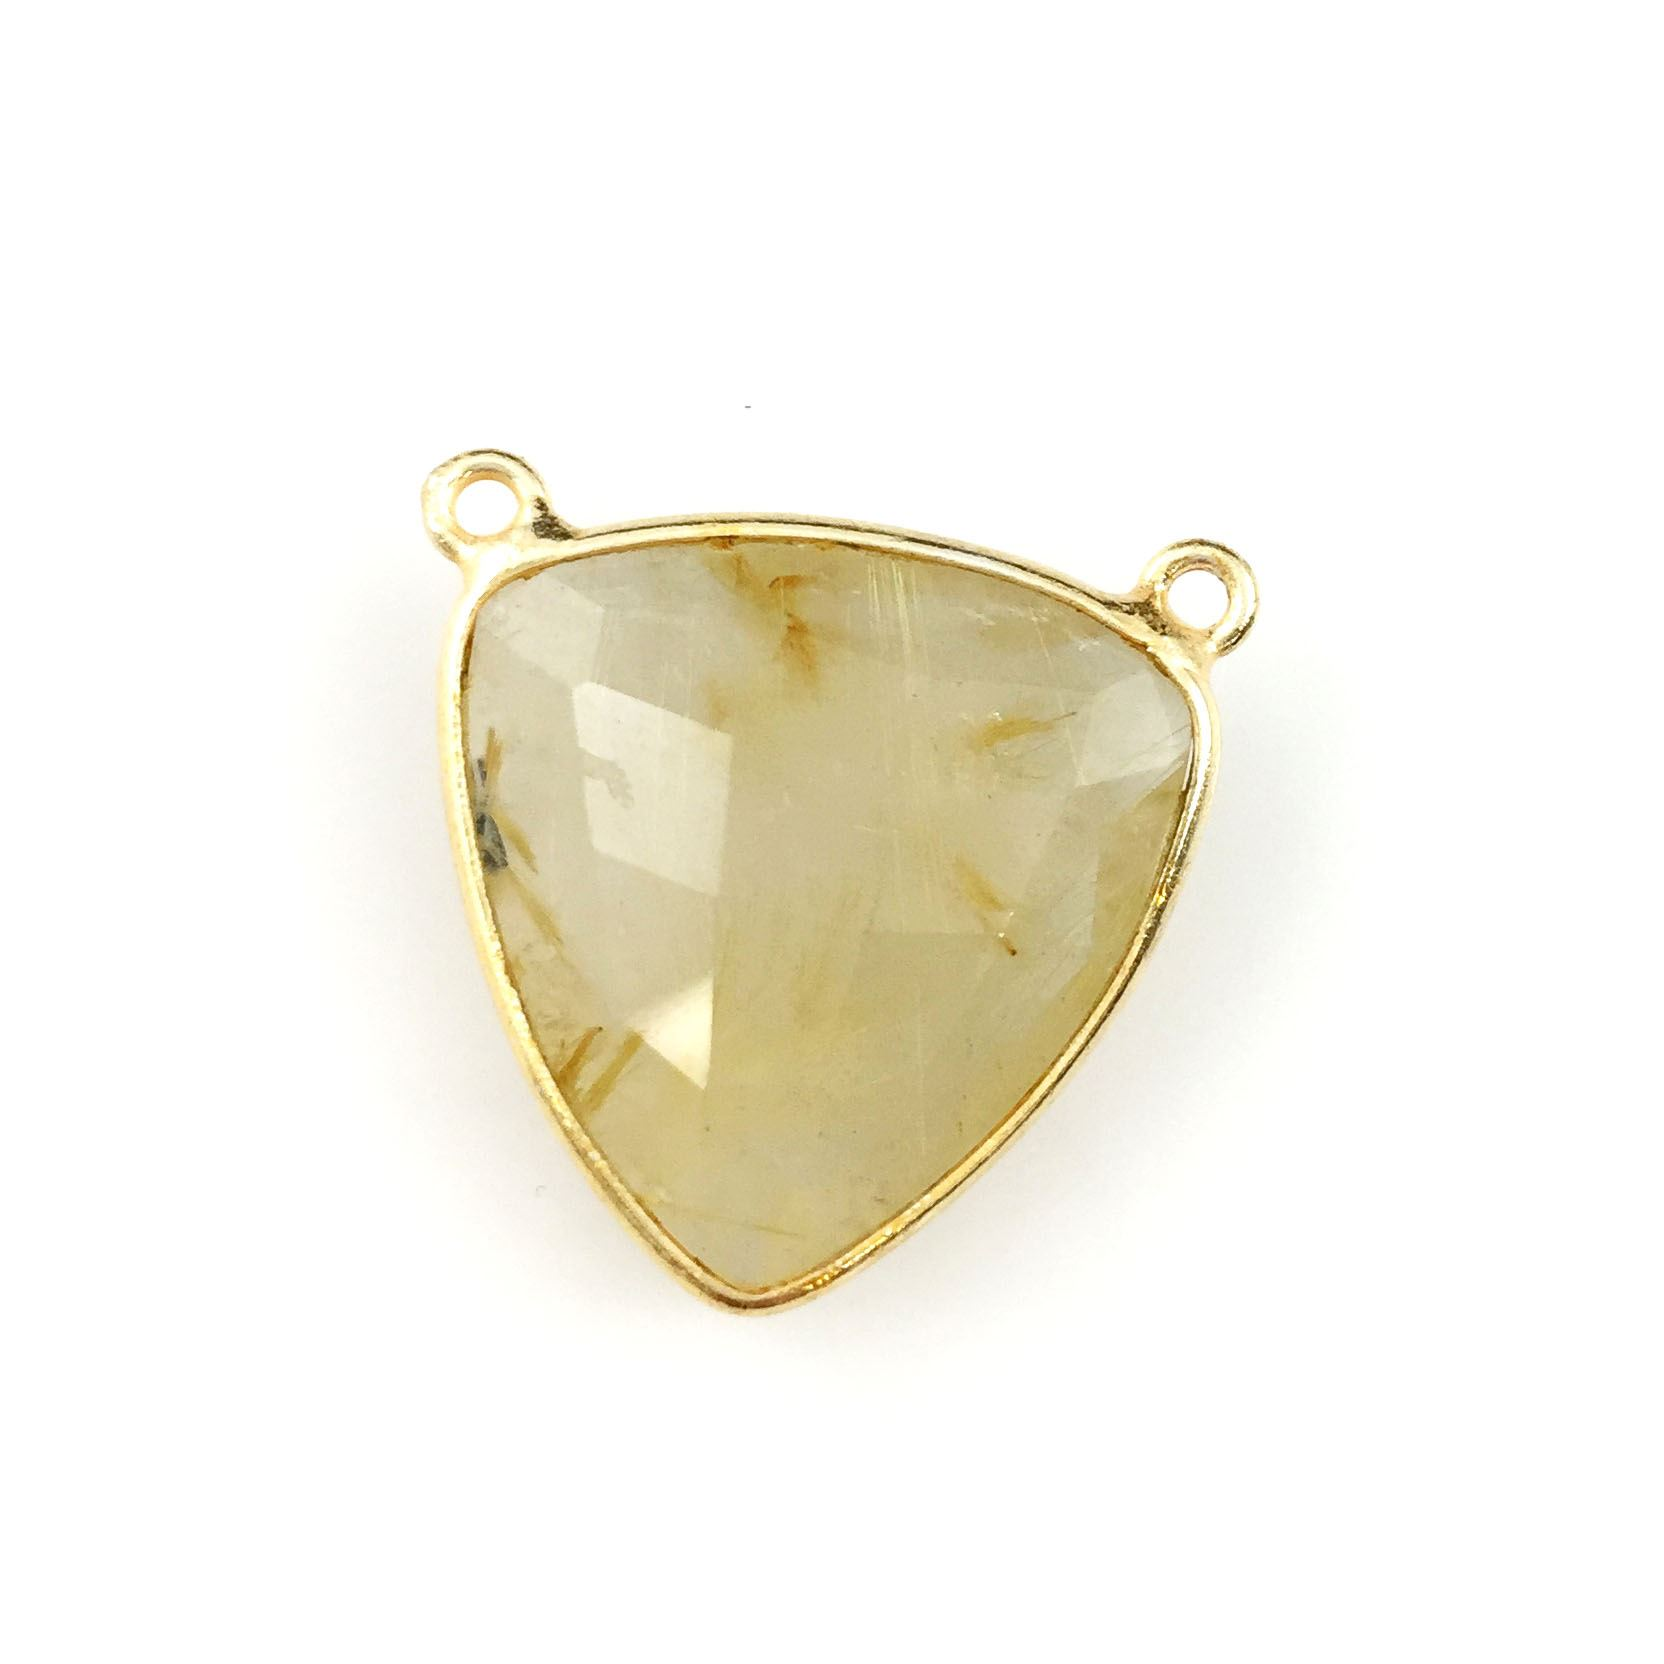 Bezel Gemstone Connector Pendant - Gold Rutilated Quartz - Gold plated Sterling Silver - Large Trillion Shaped Faceted - 18 mm - 1 piece